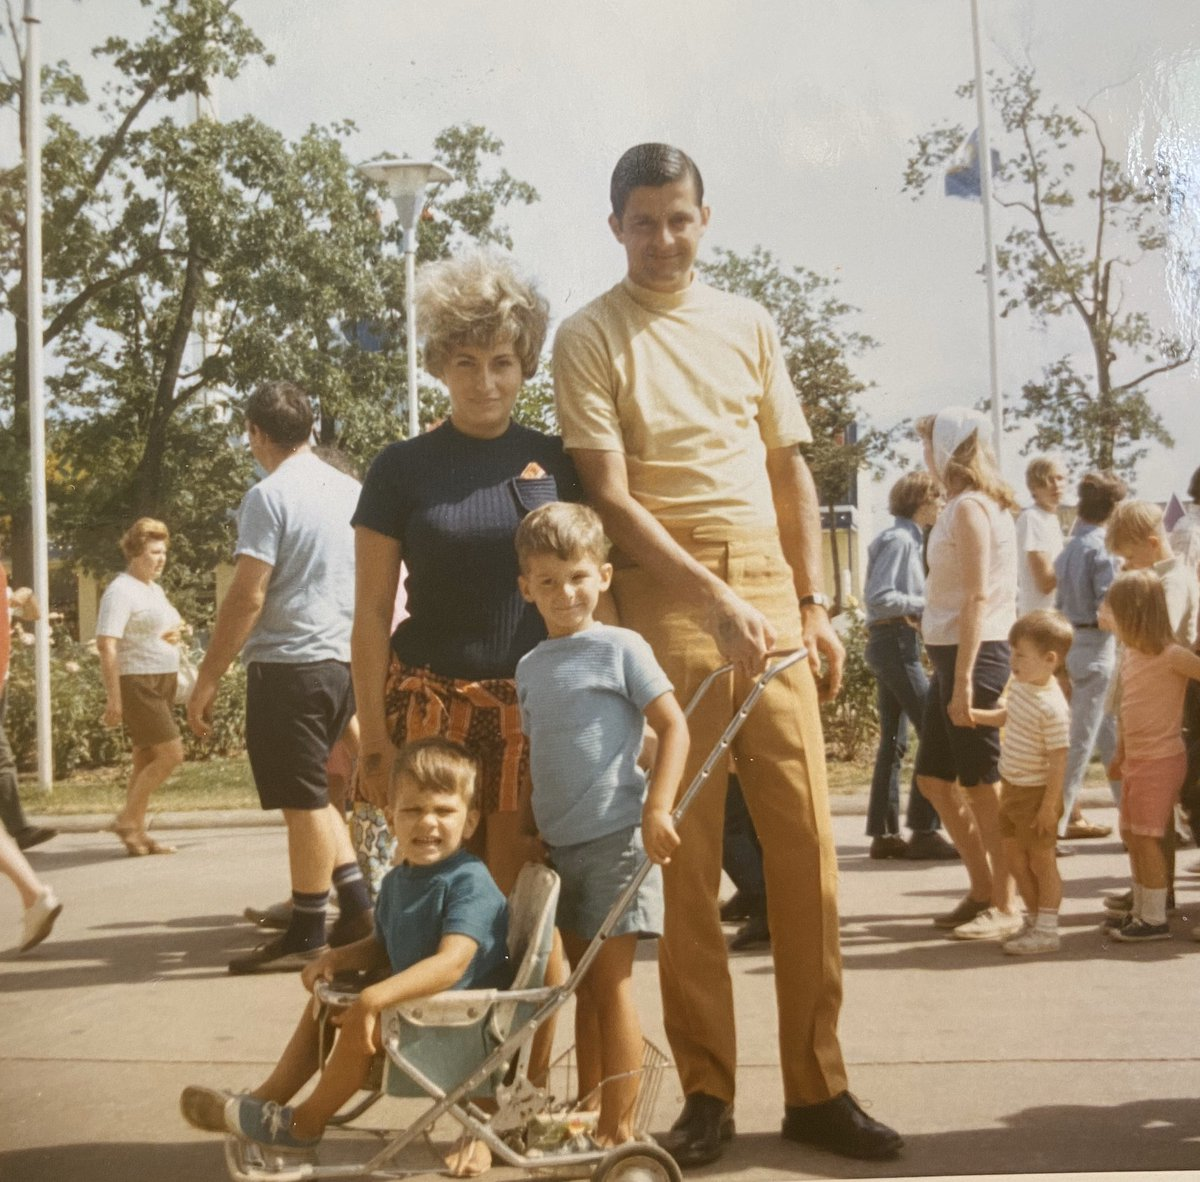 Steve Mason On Twitter It S Nationalkindergartenday Here I Am Kindergarten Age With My Mom Dad And Little Brother Brian Not only for the fact it's promoting gambling to kids, but it also shows steve as someone who actually has an issue with gambling. mom dad and little brother brian